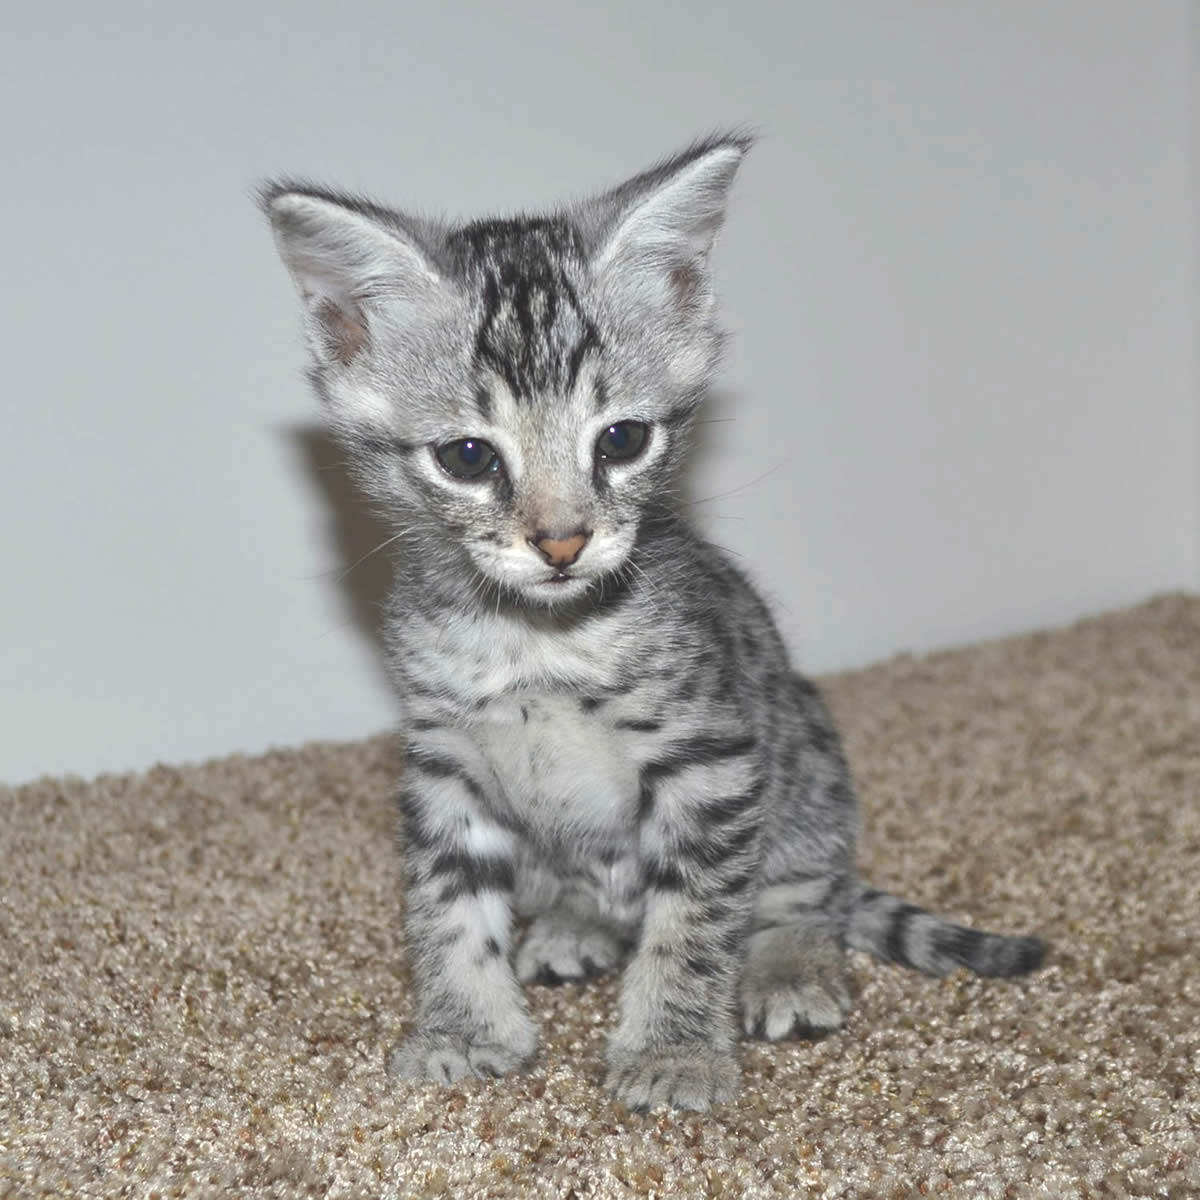 f2-savannah-kittens-tb0901a